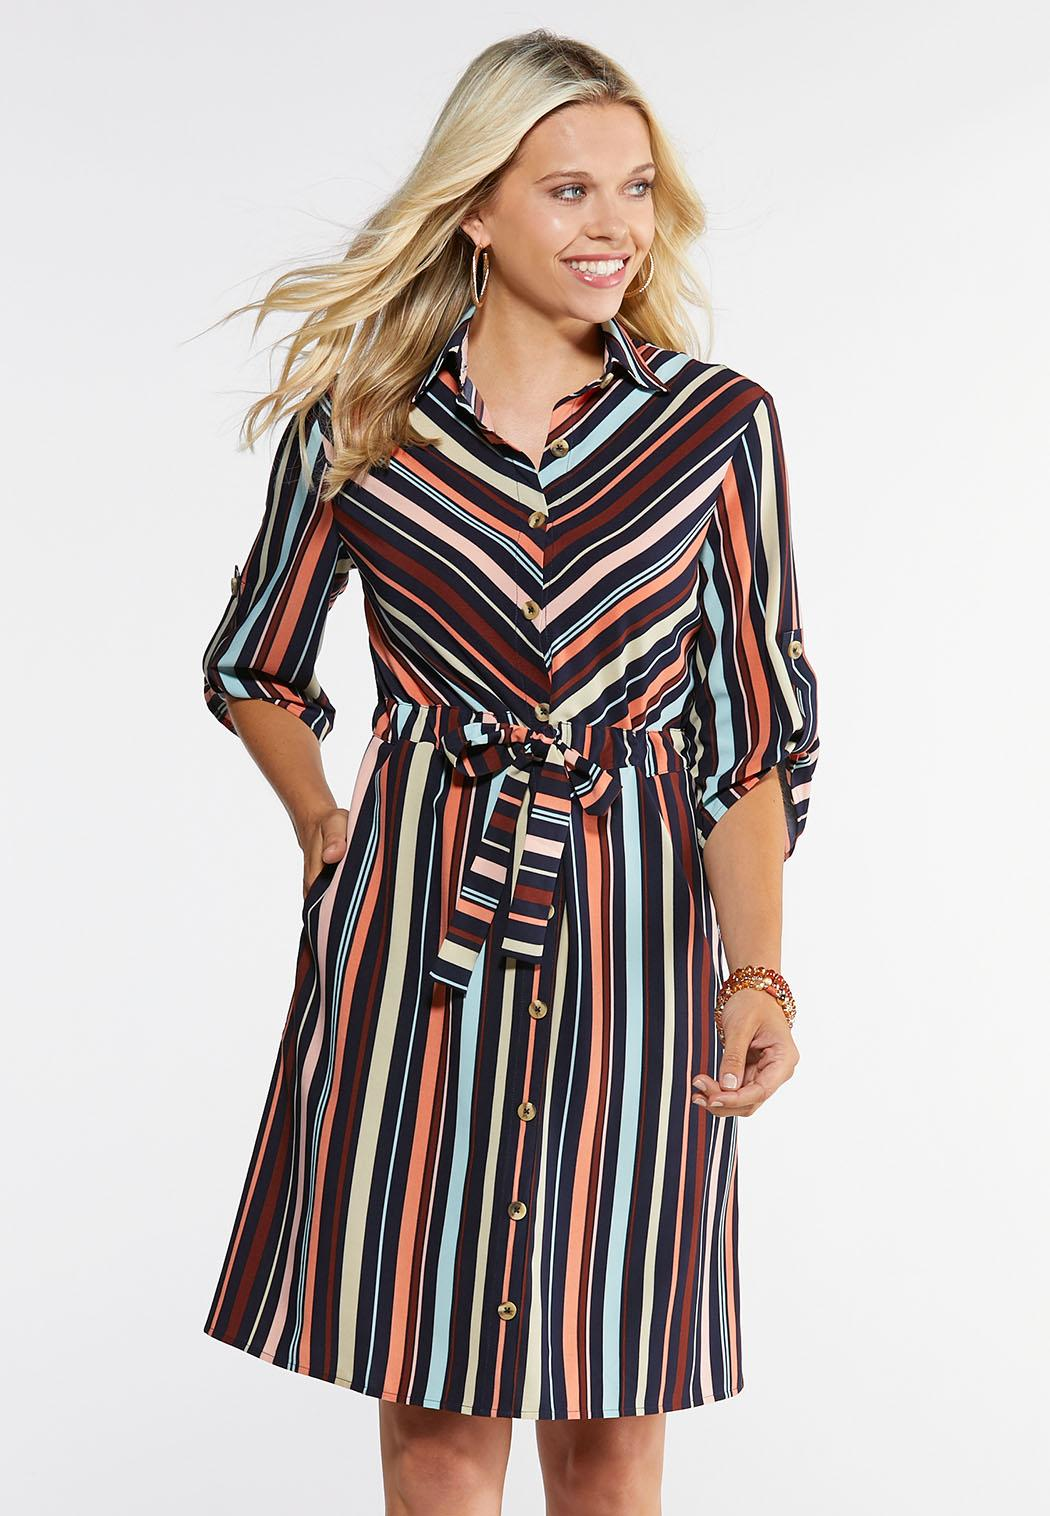 Plus Size Tied Shirt Dress Plus Sizes Cato Fashions